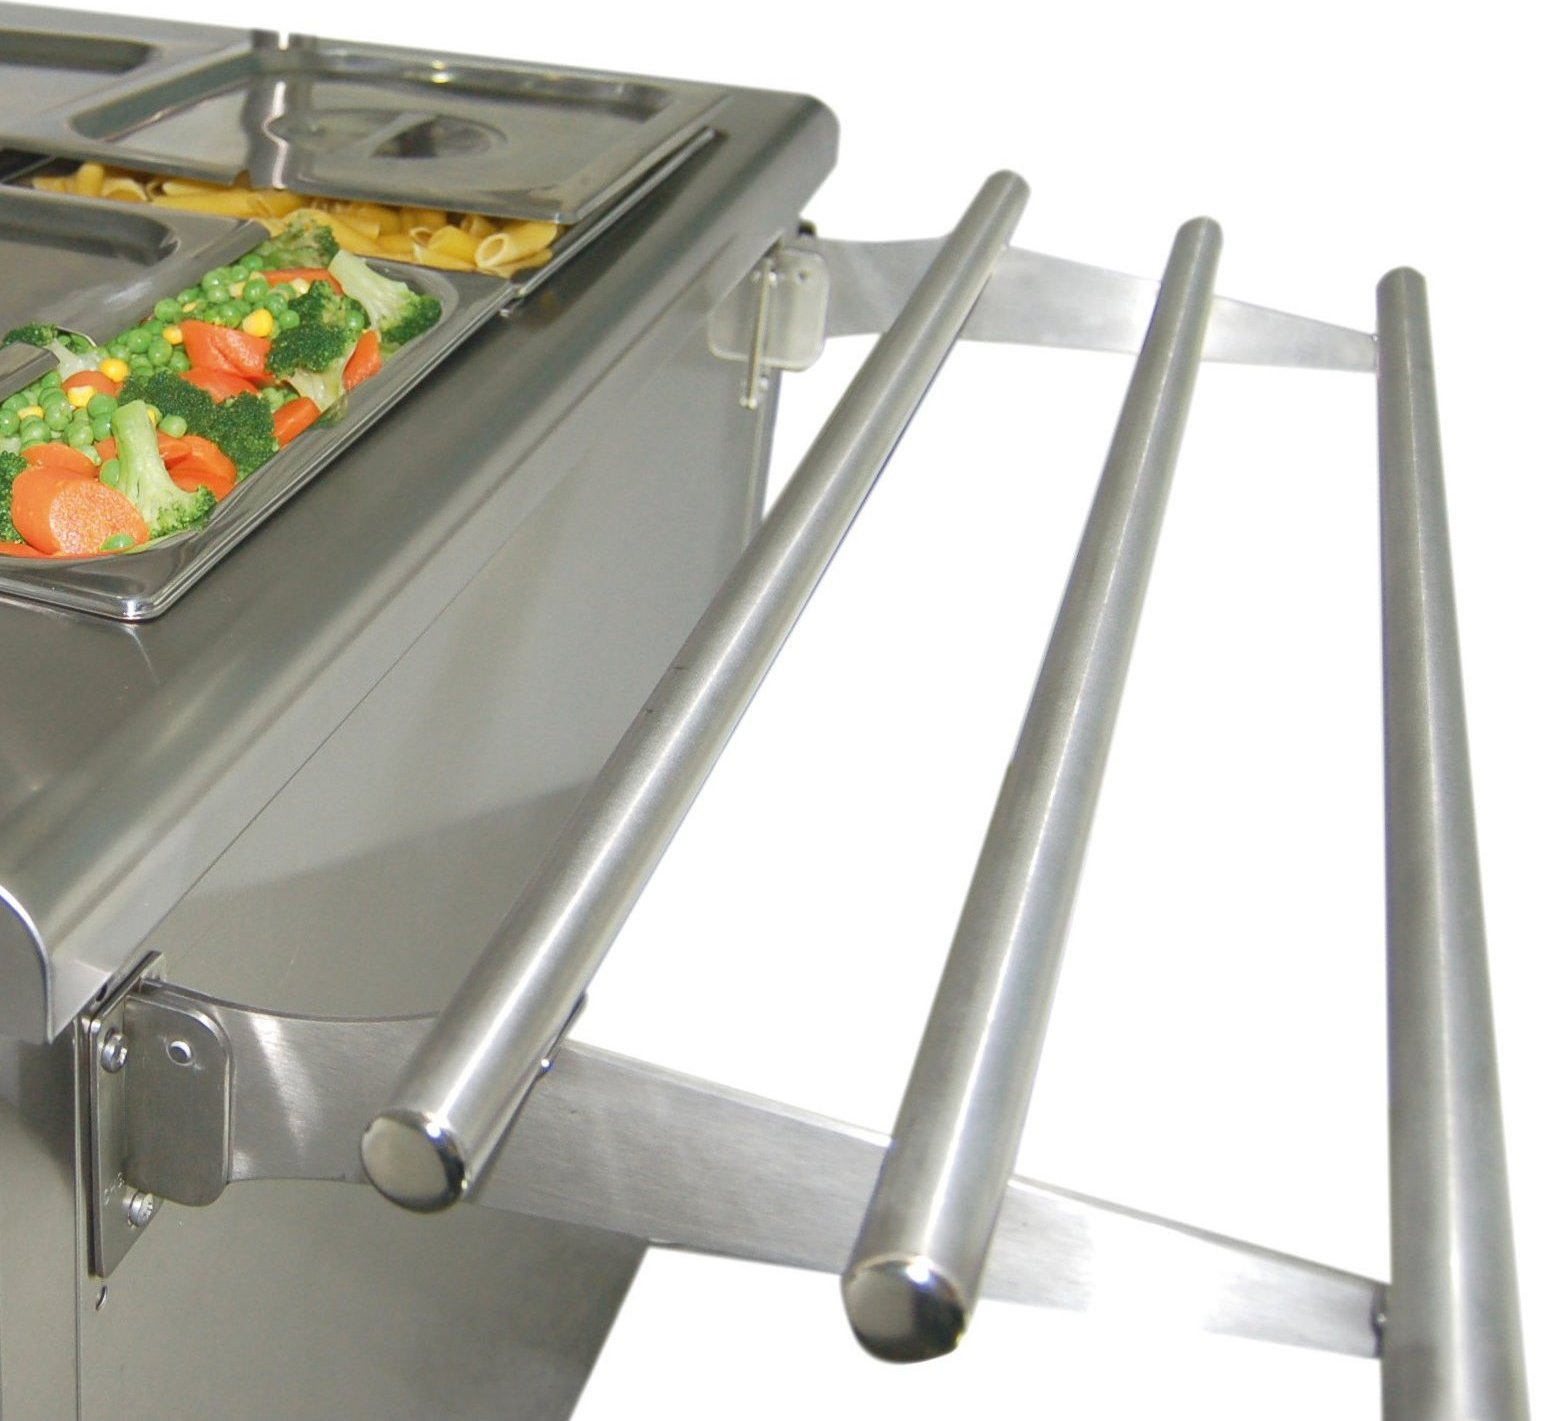 Stainless Steel Tray Slides And Tray Rails